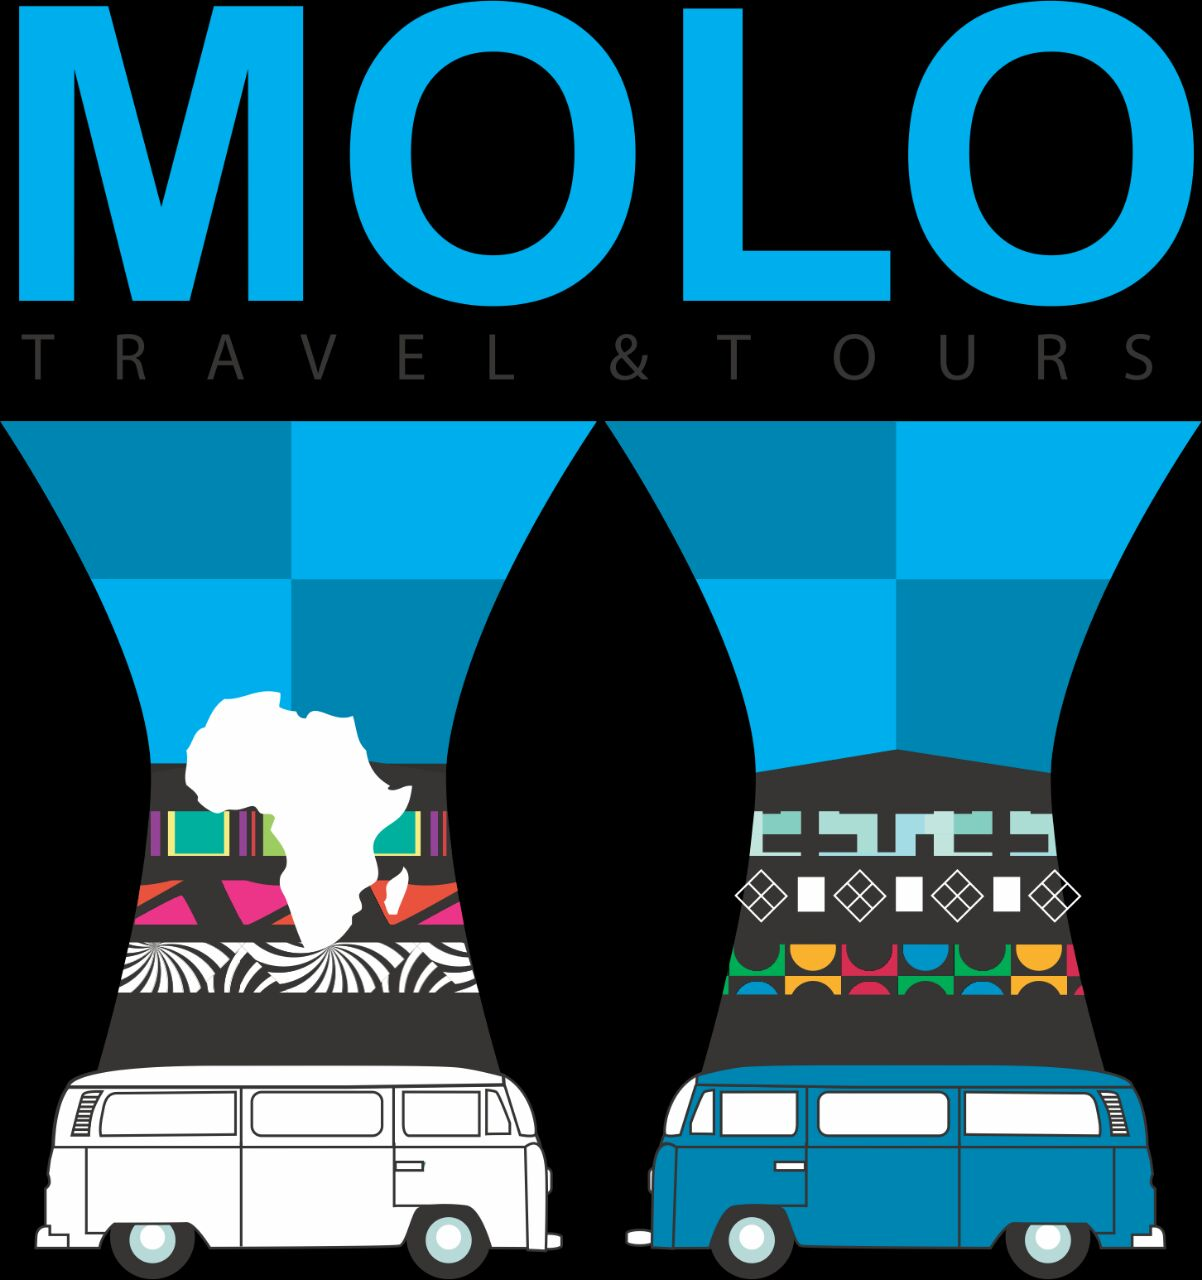 Molo Travel and Tours